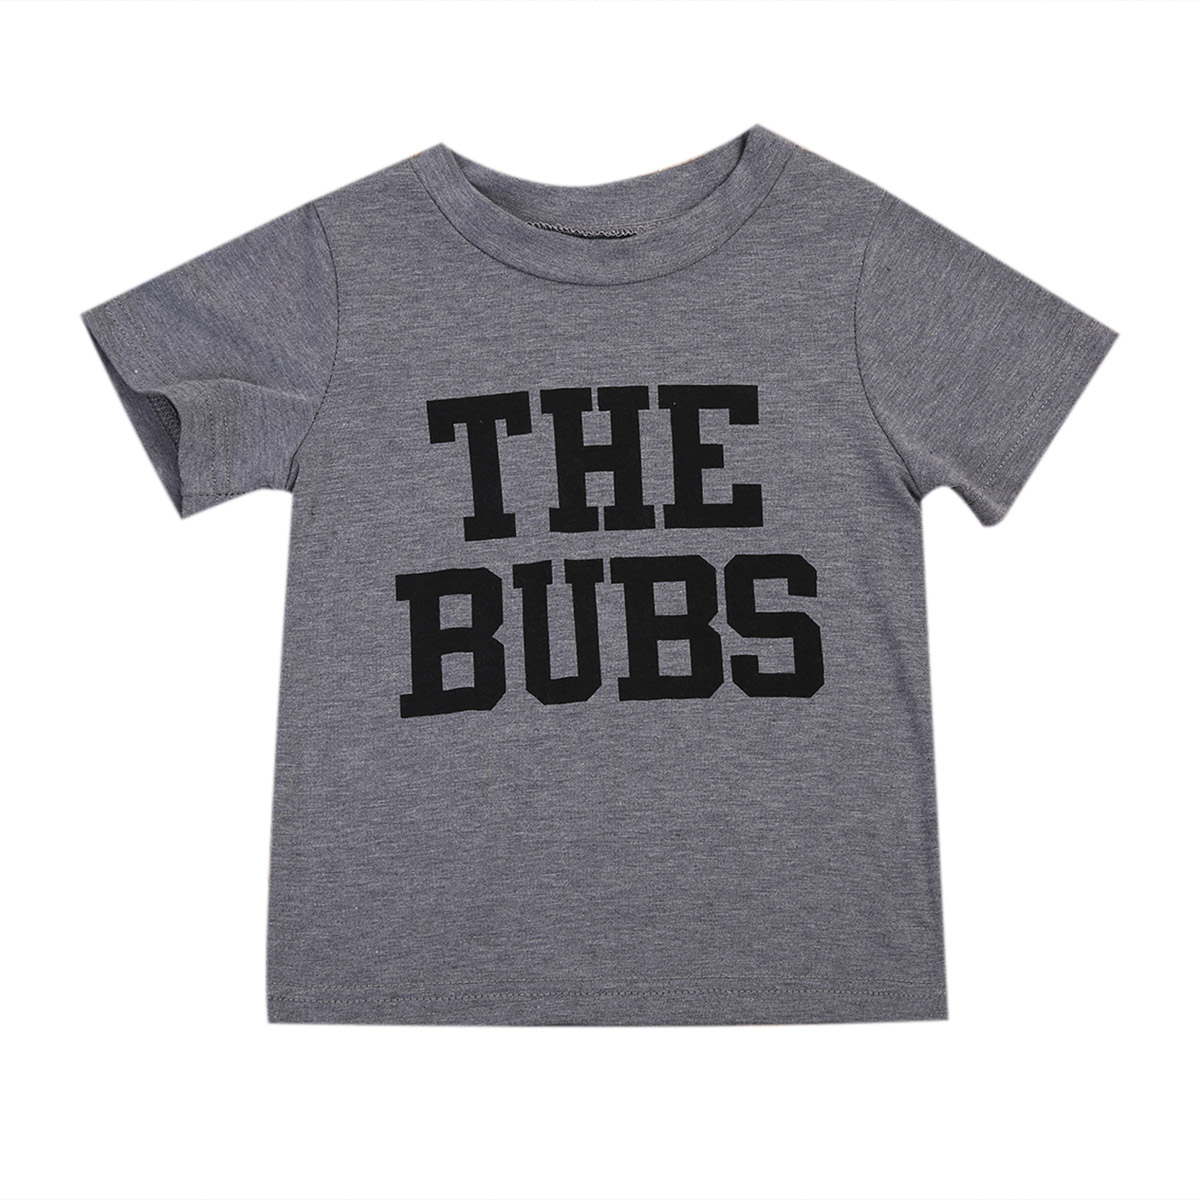 T-Shirt Toddler Girl Baby Size-1-6 Boy Kids Cotton Summer Unisex Casual Outfit Top